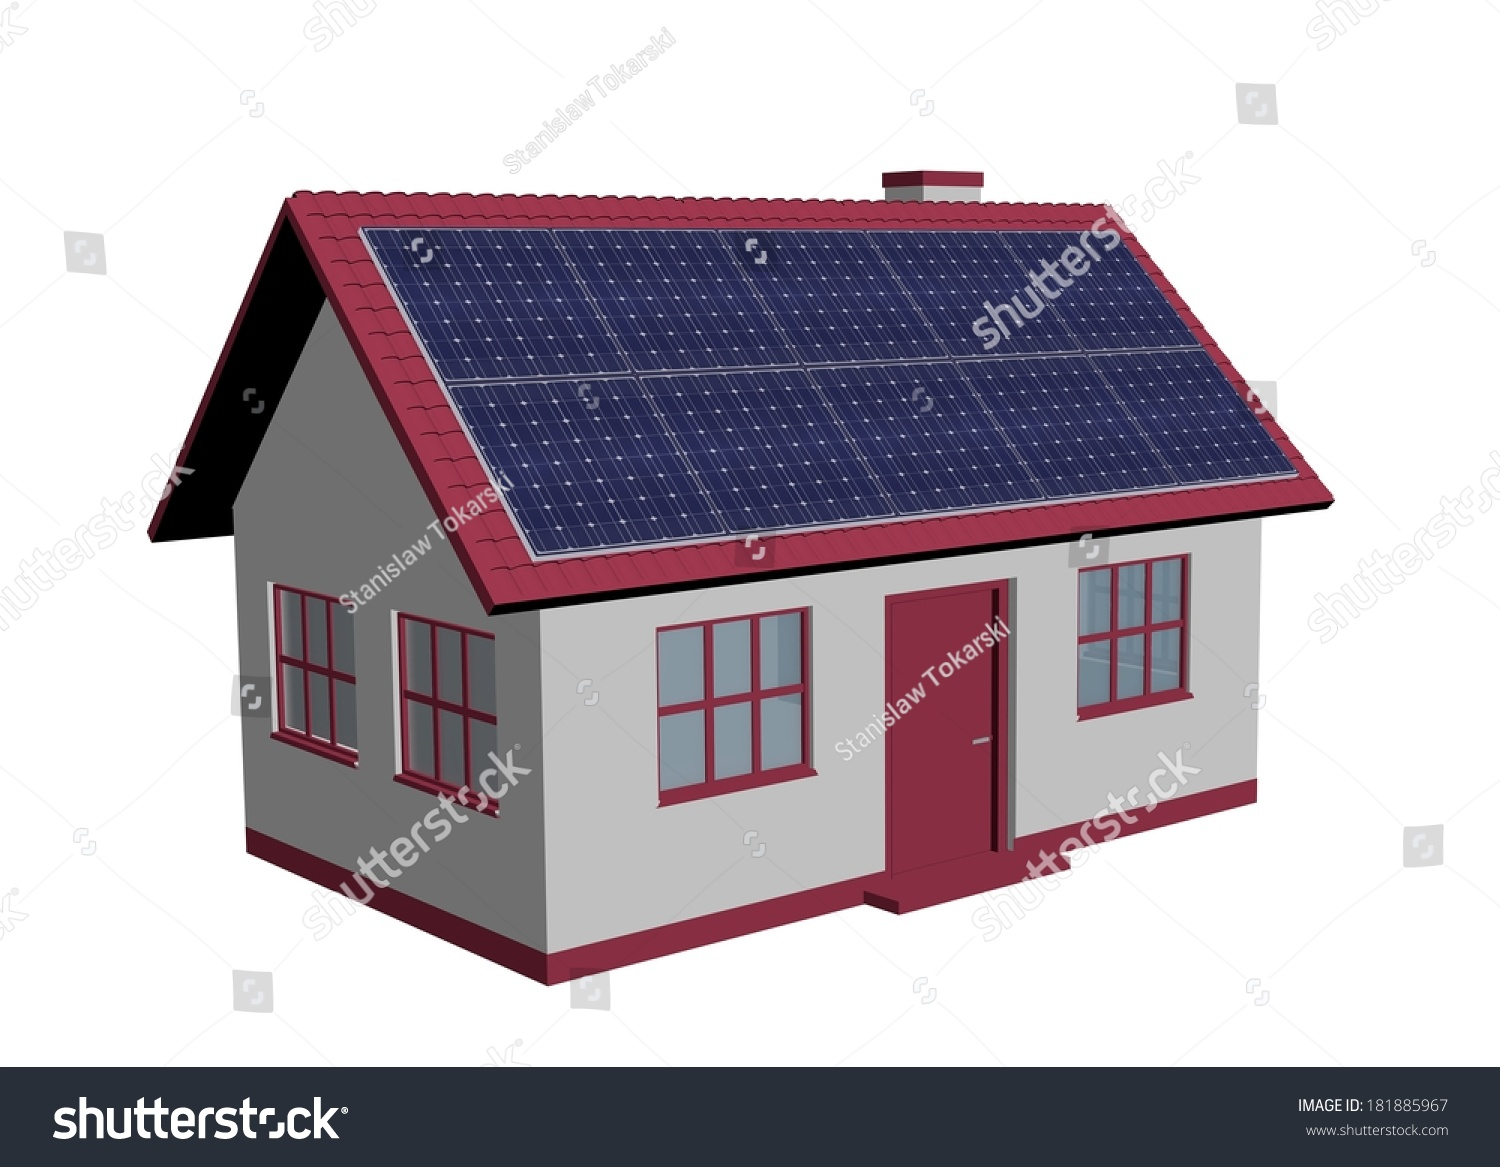 3d render simple house model with solar panels